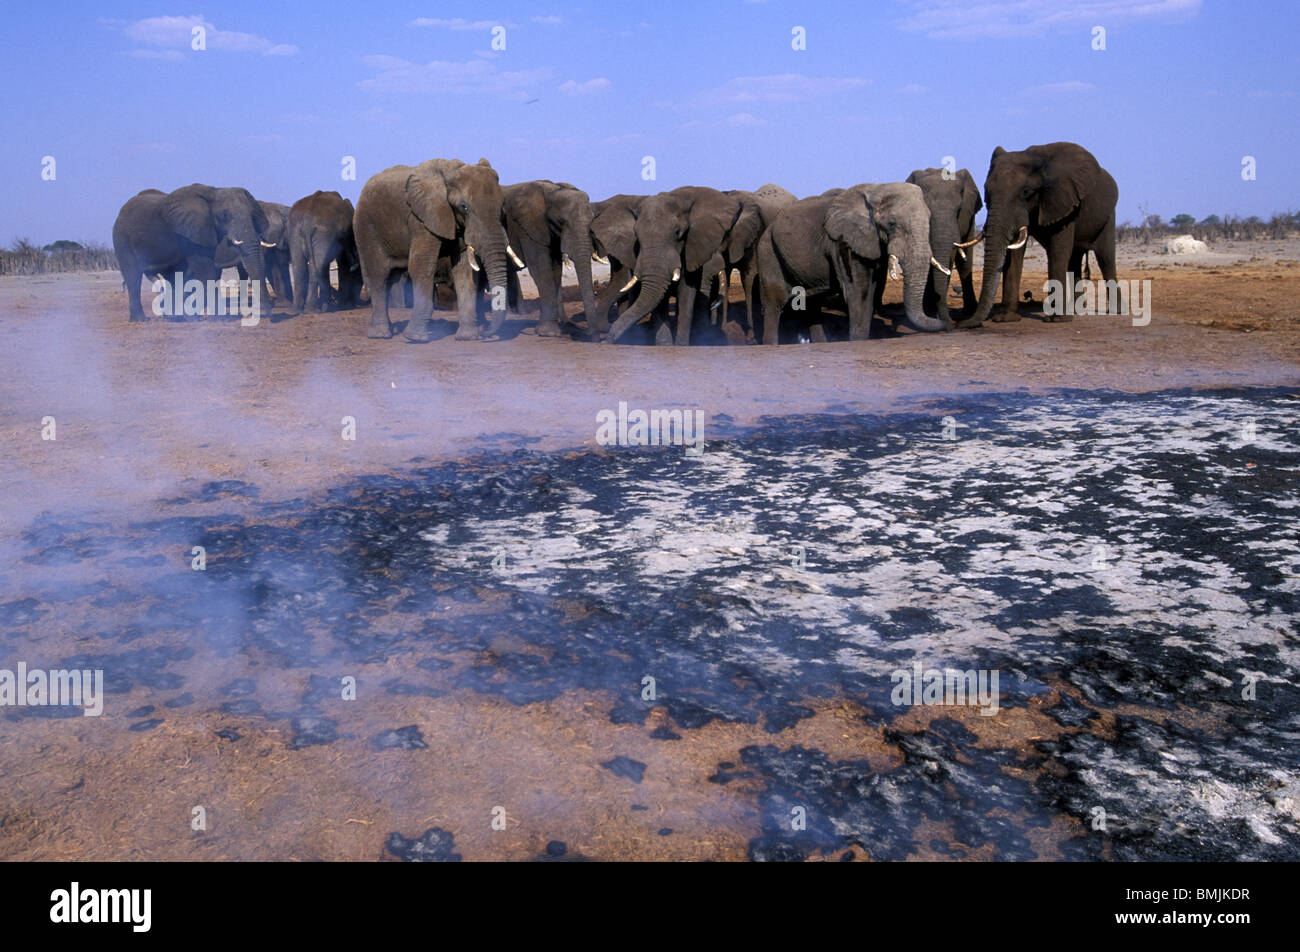 Botswana, Chobe National Park, Elephant herd (Loxodonta africana) and smoldering fire during dry season in Savuti - Stock Image